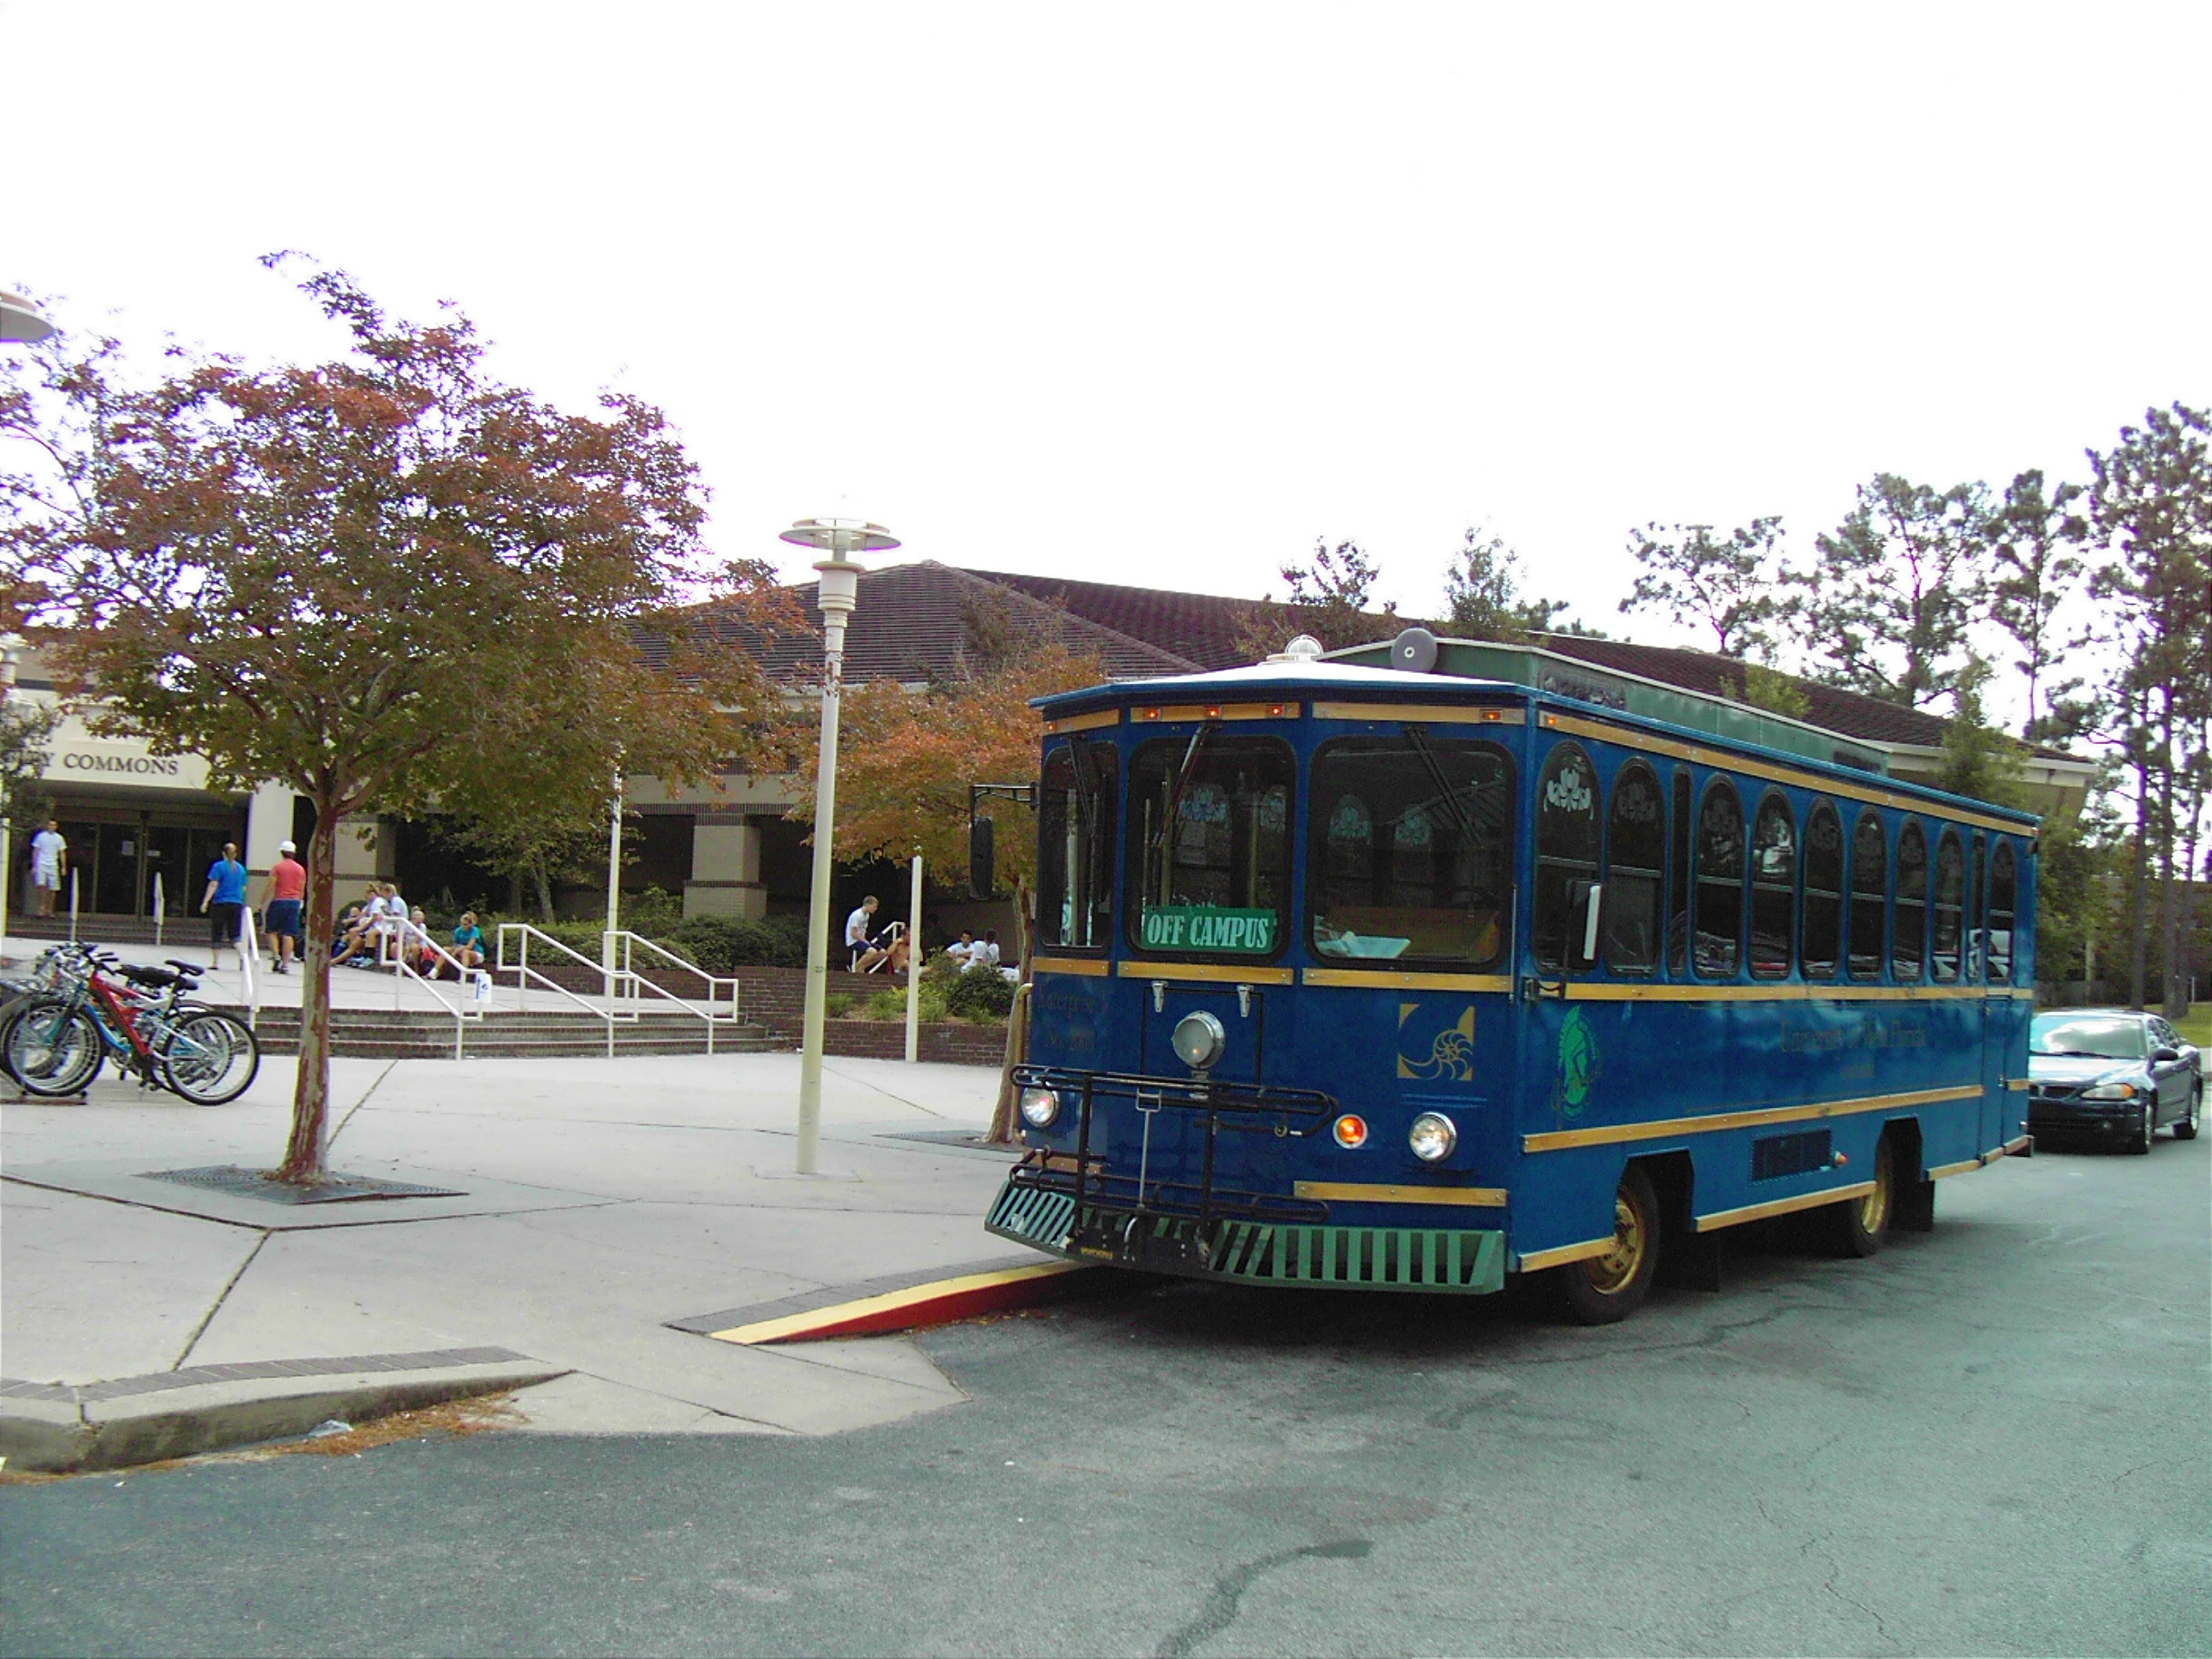 Image of the UWF Trolley parked in front of the UWF Commons.